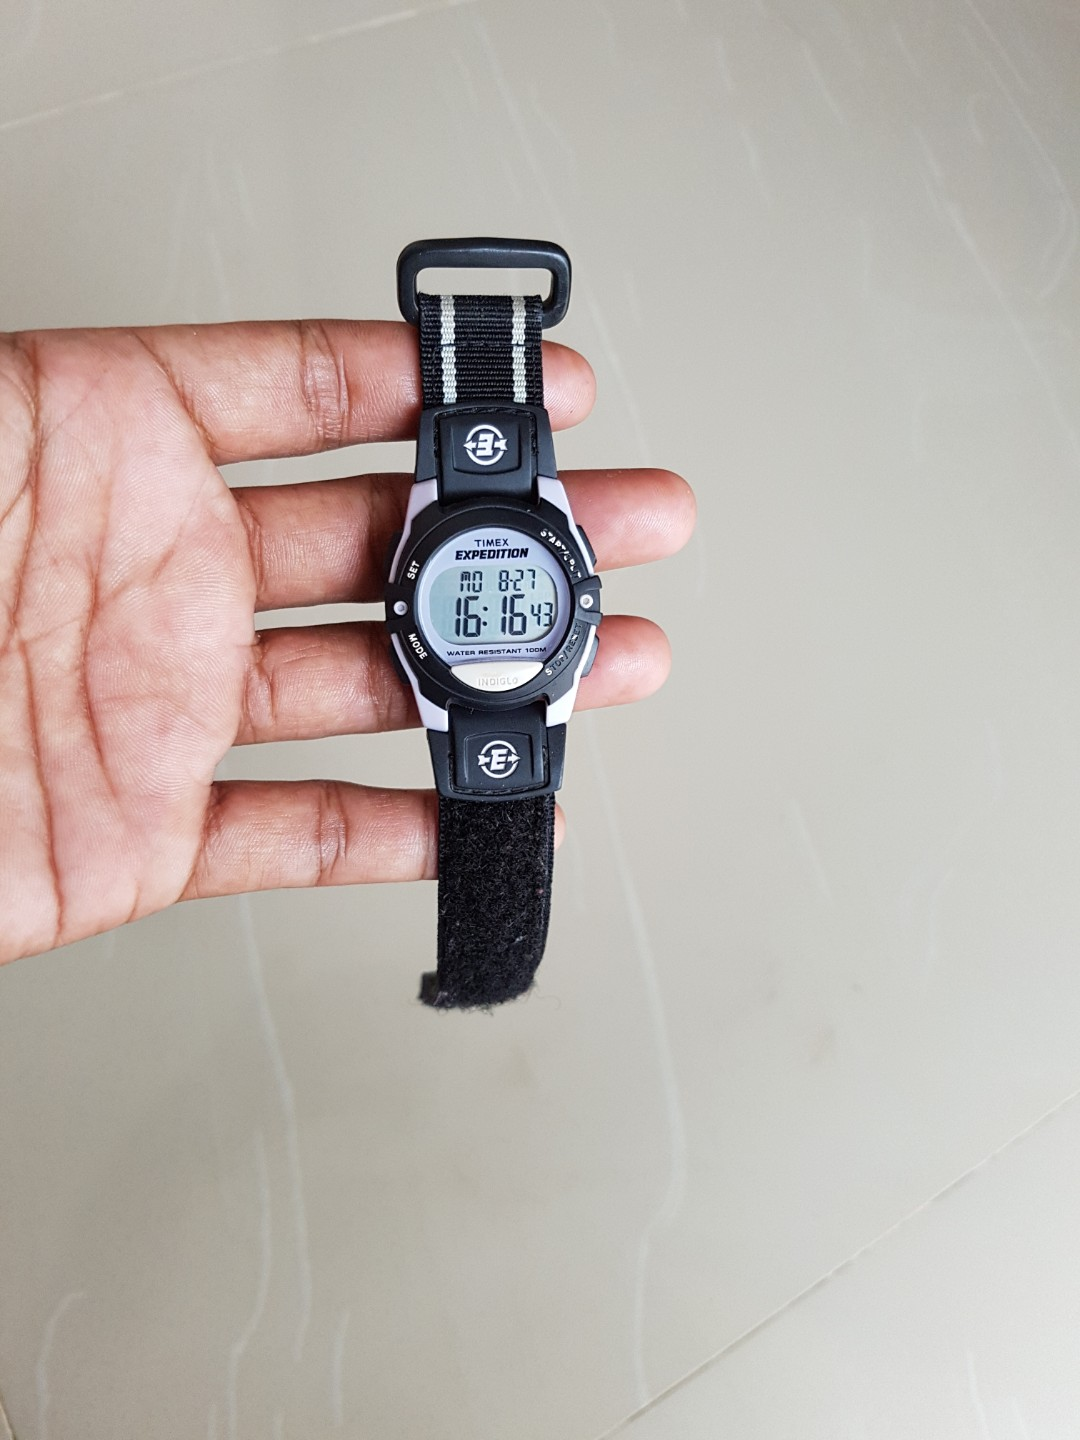 Harga Jual Jam Tangan Expedition Bekas 850000 Harley Davidson Hd Pria 6631 Black Orange Triple Time Original Timex Preloved Fesyen Di Carousell